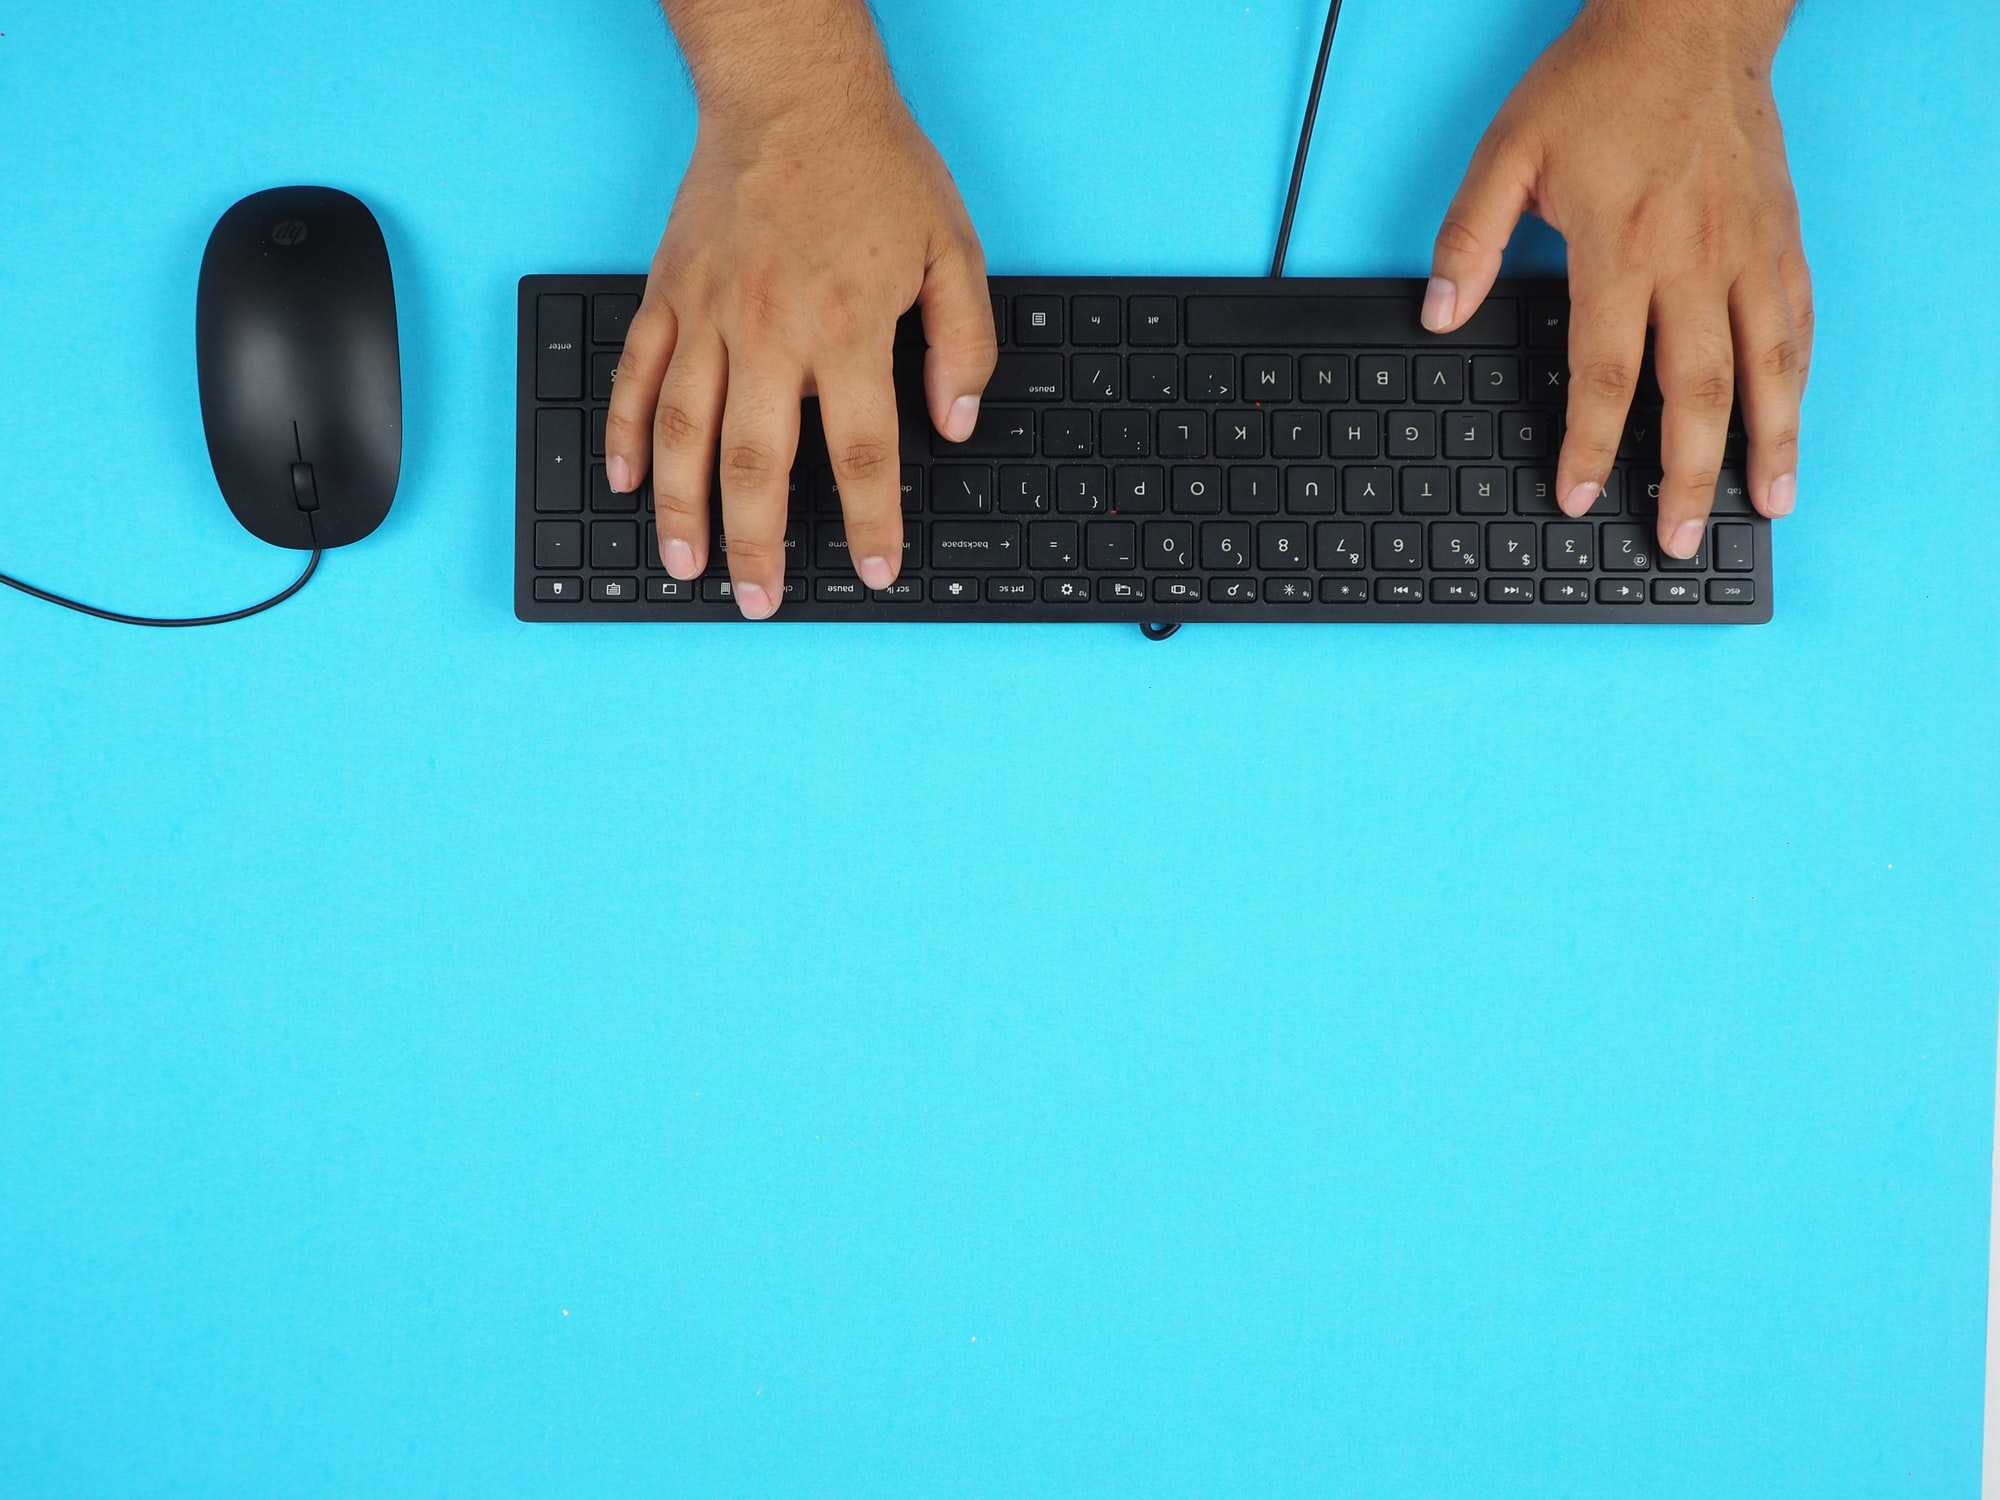 Programmer banished from society for using a mouse in VIM